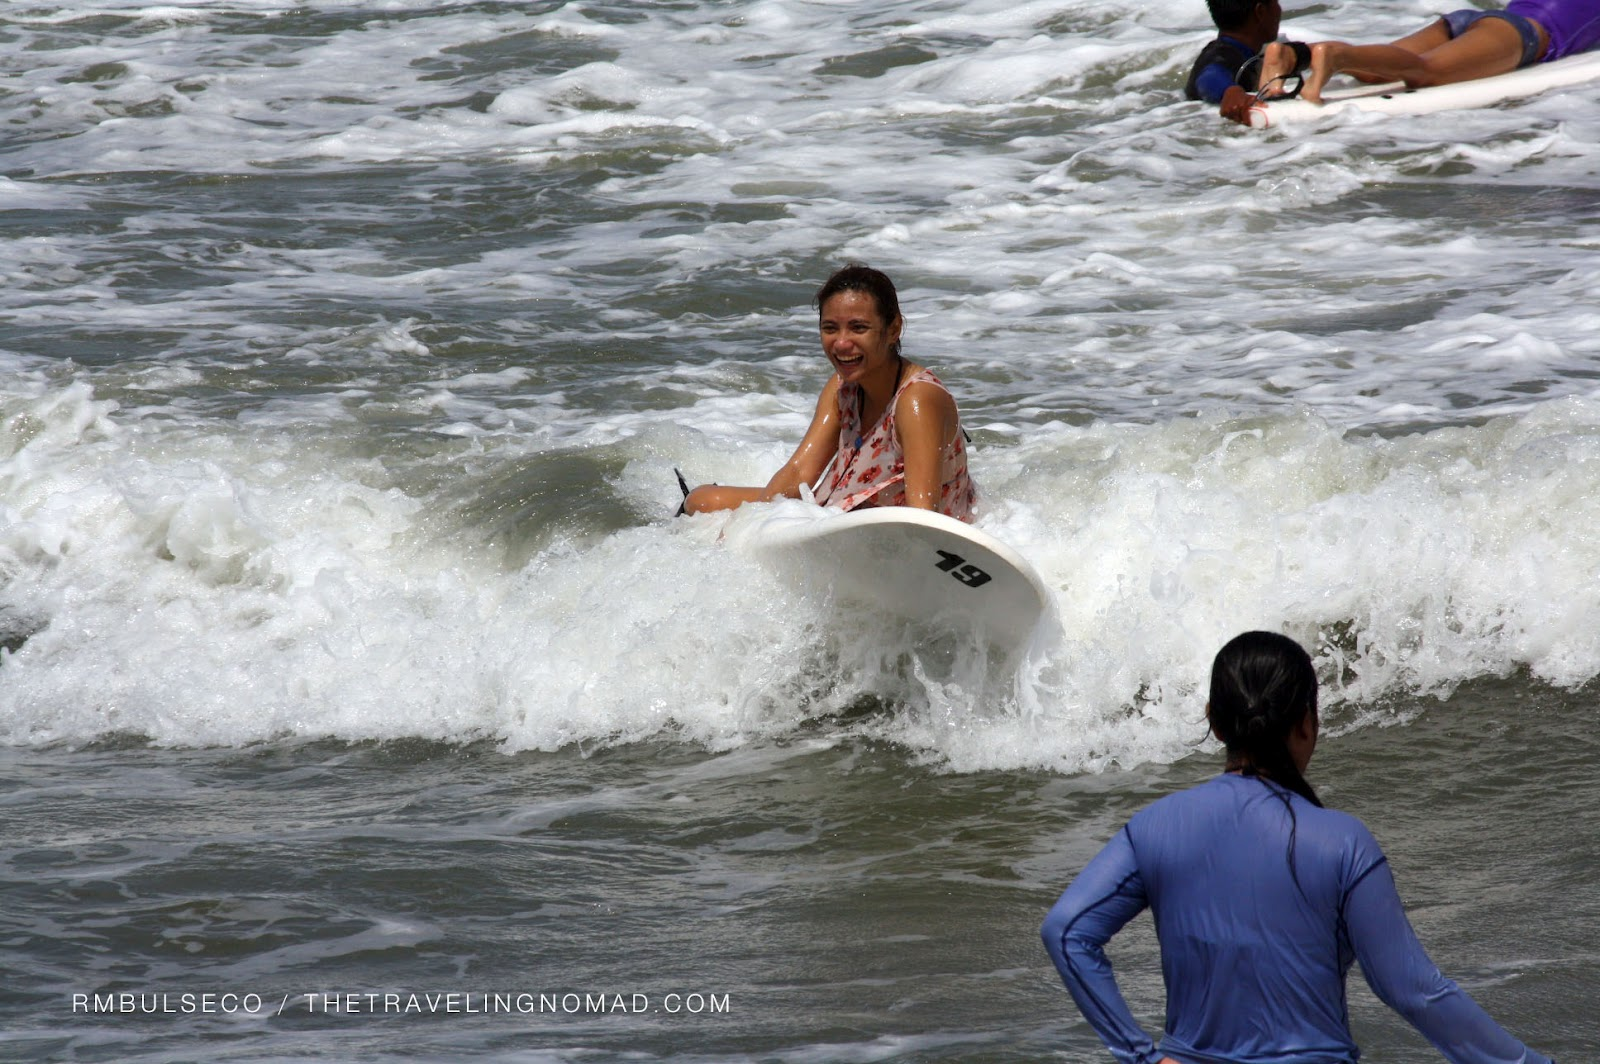 Surfing at Baler, Aurora